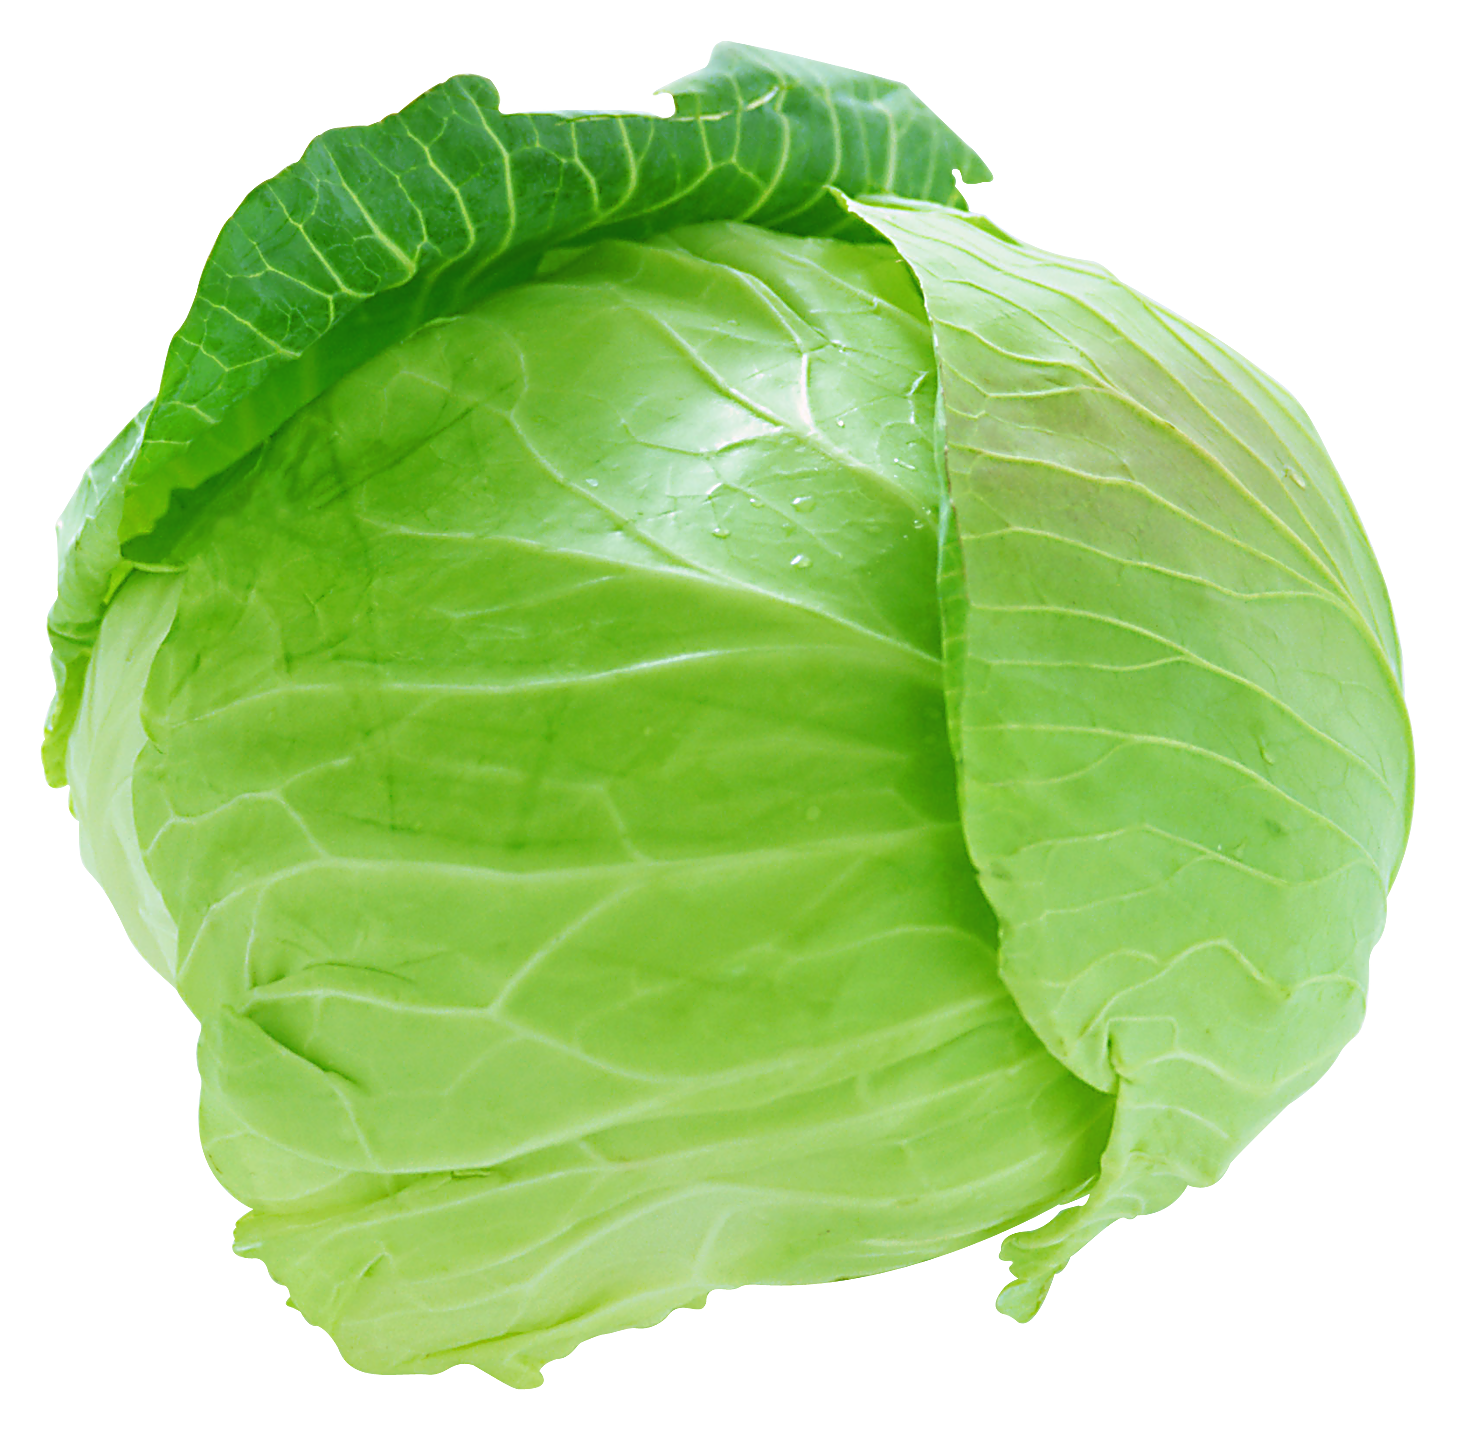 Lettuce clipart face Free org Cliparts Cabbage DownloadClipart